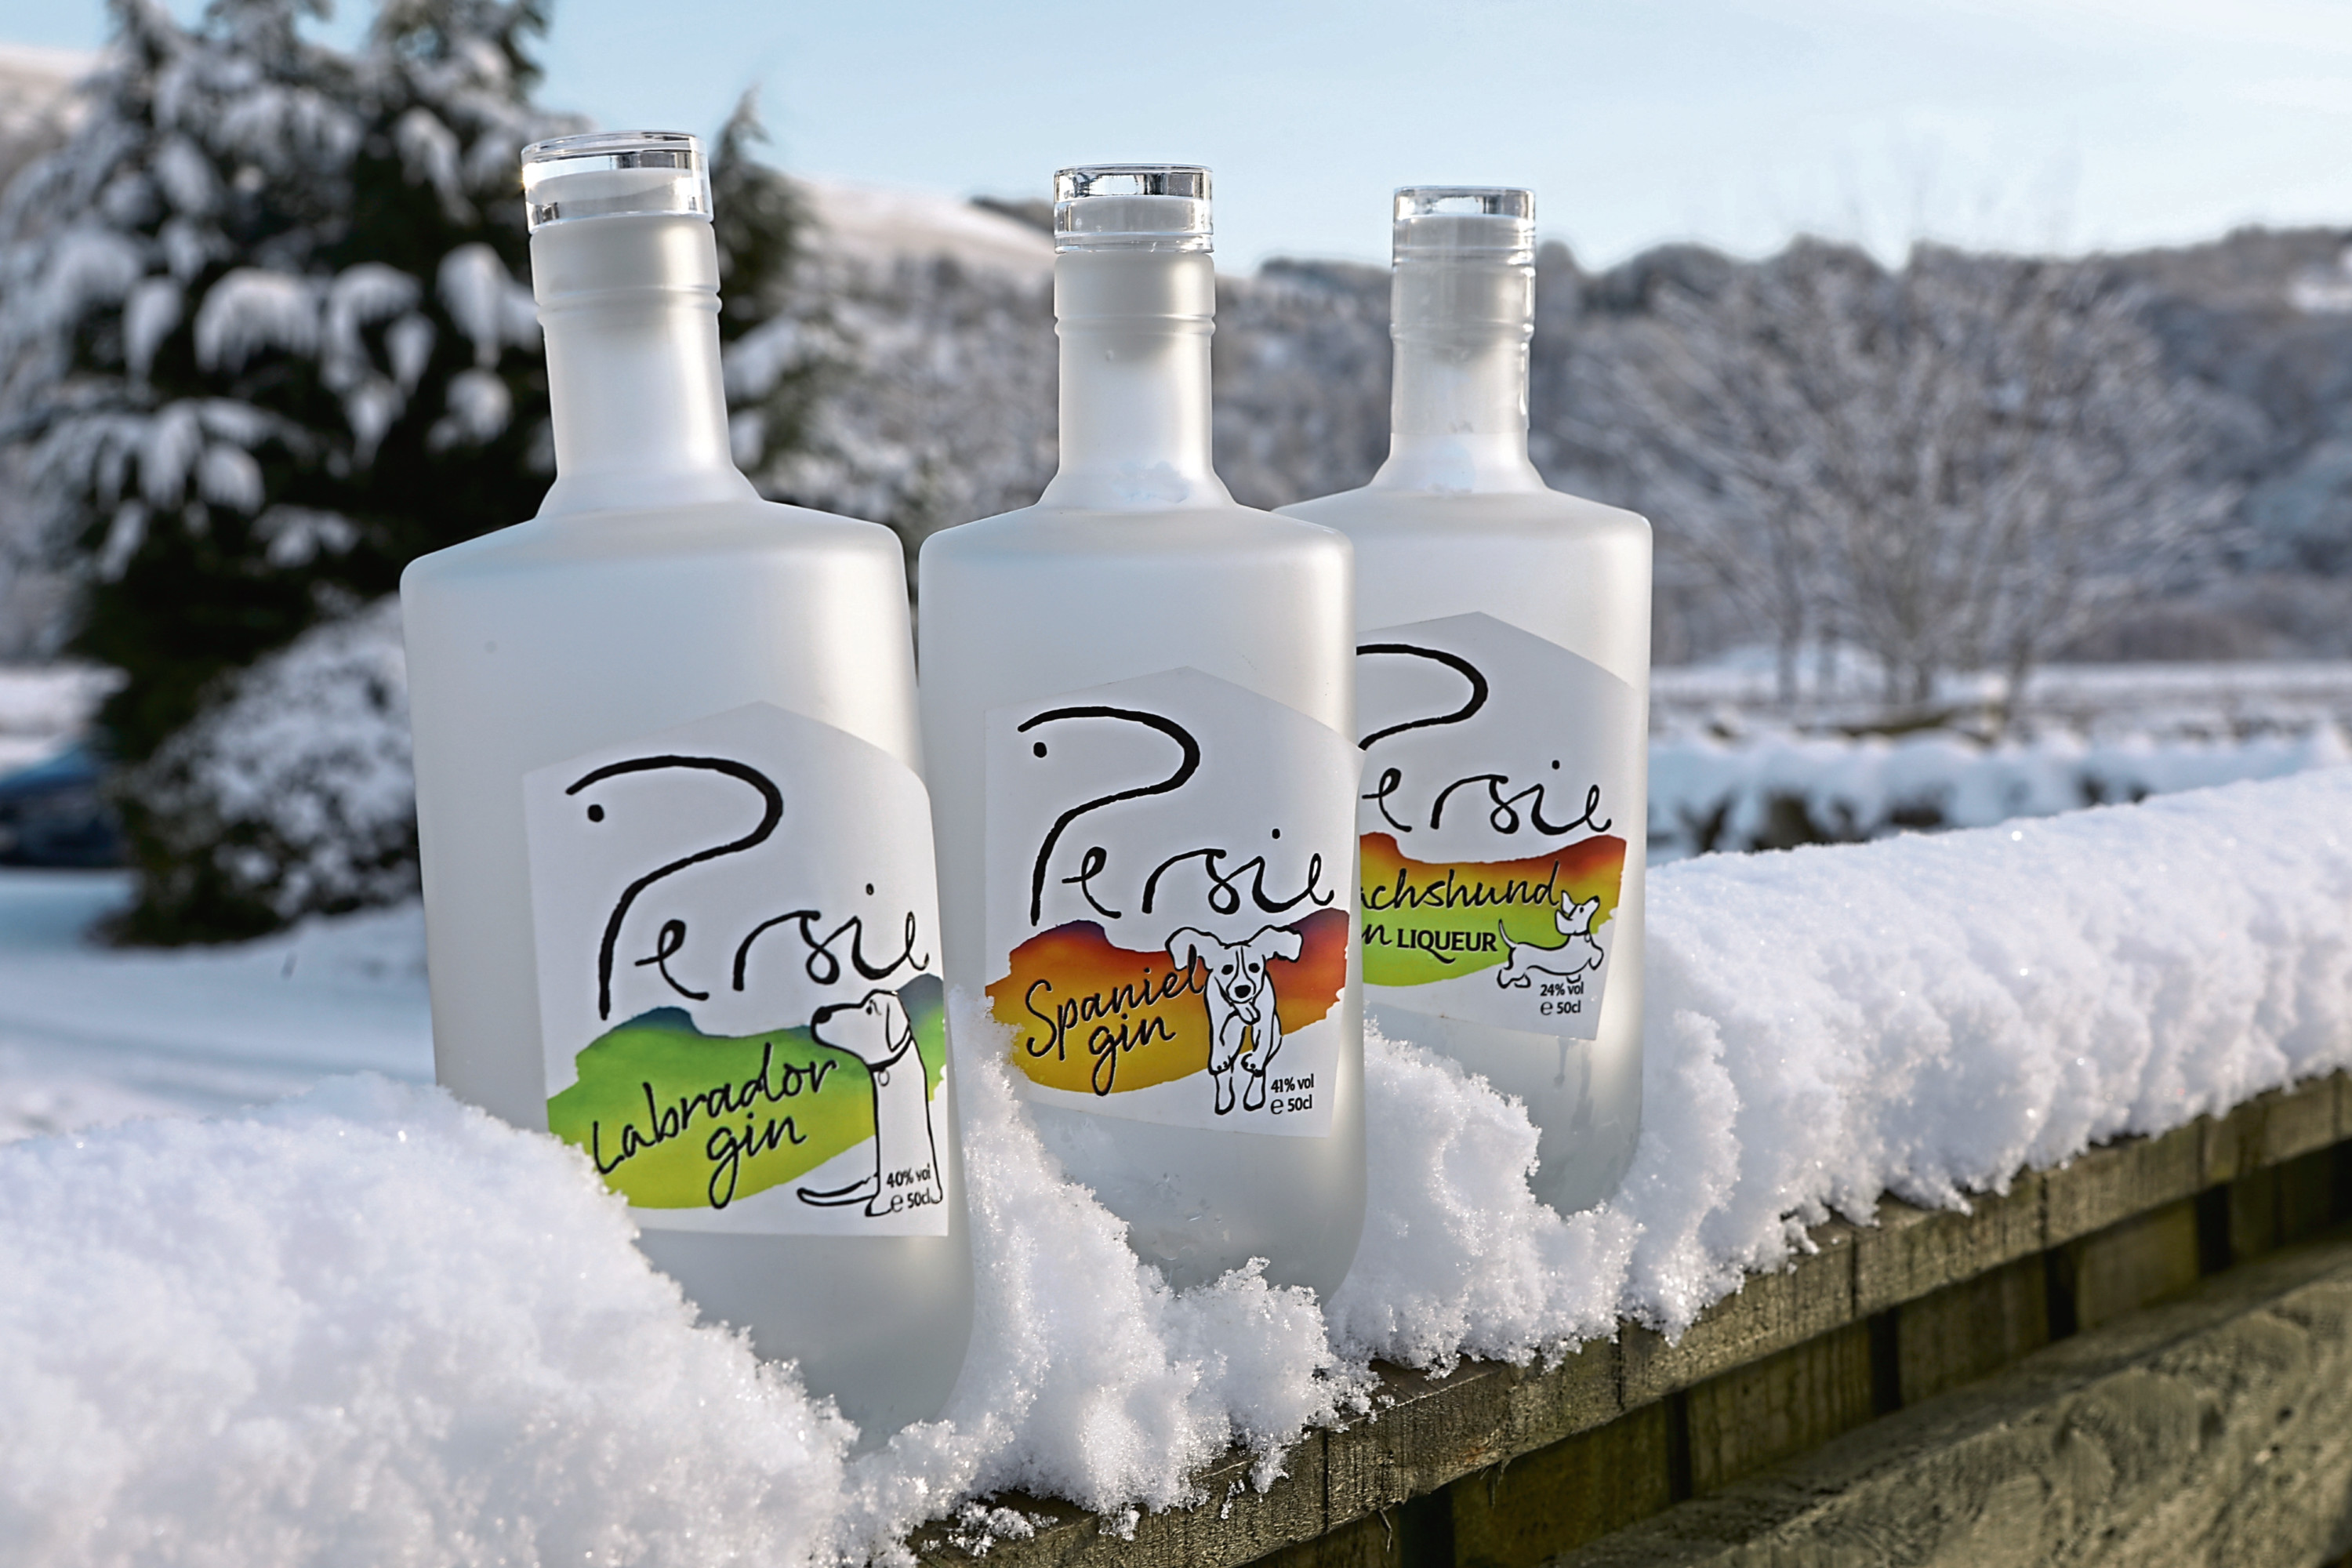 Persie Gin is a hit with dog-lovers and people from all walks of life!